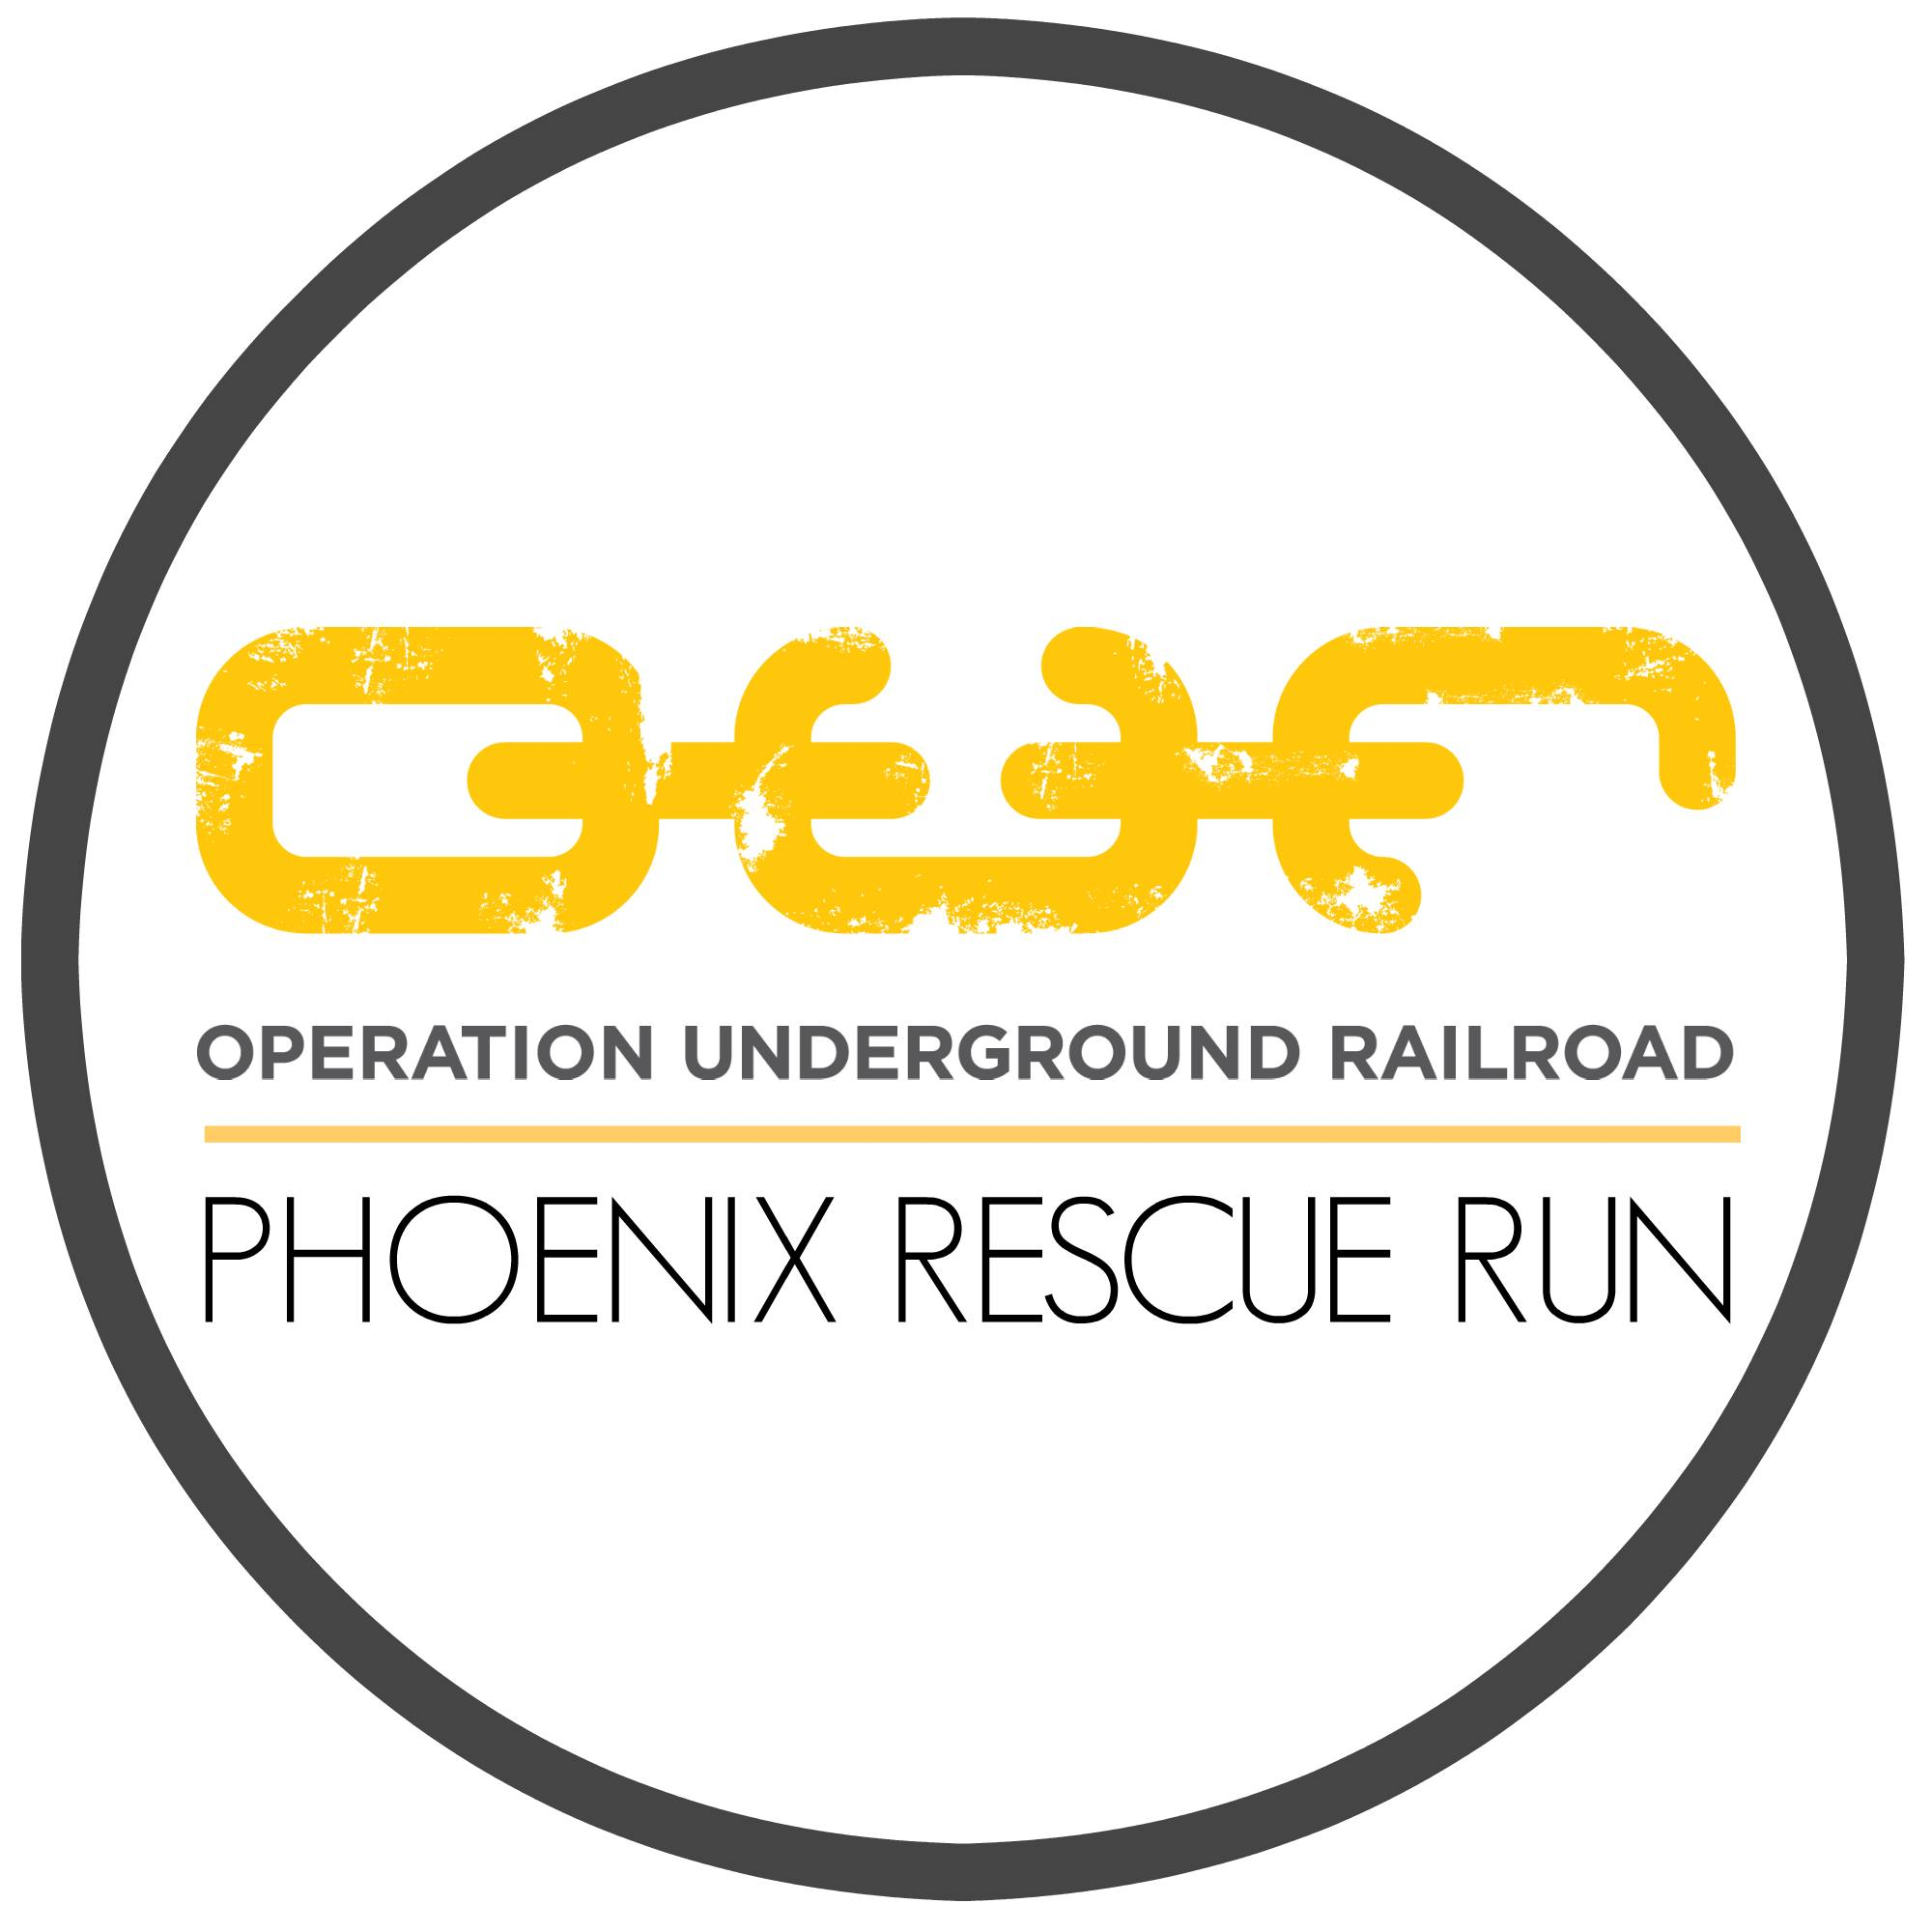 Phoenix Rescue Run Photo